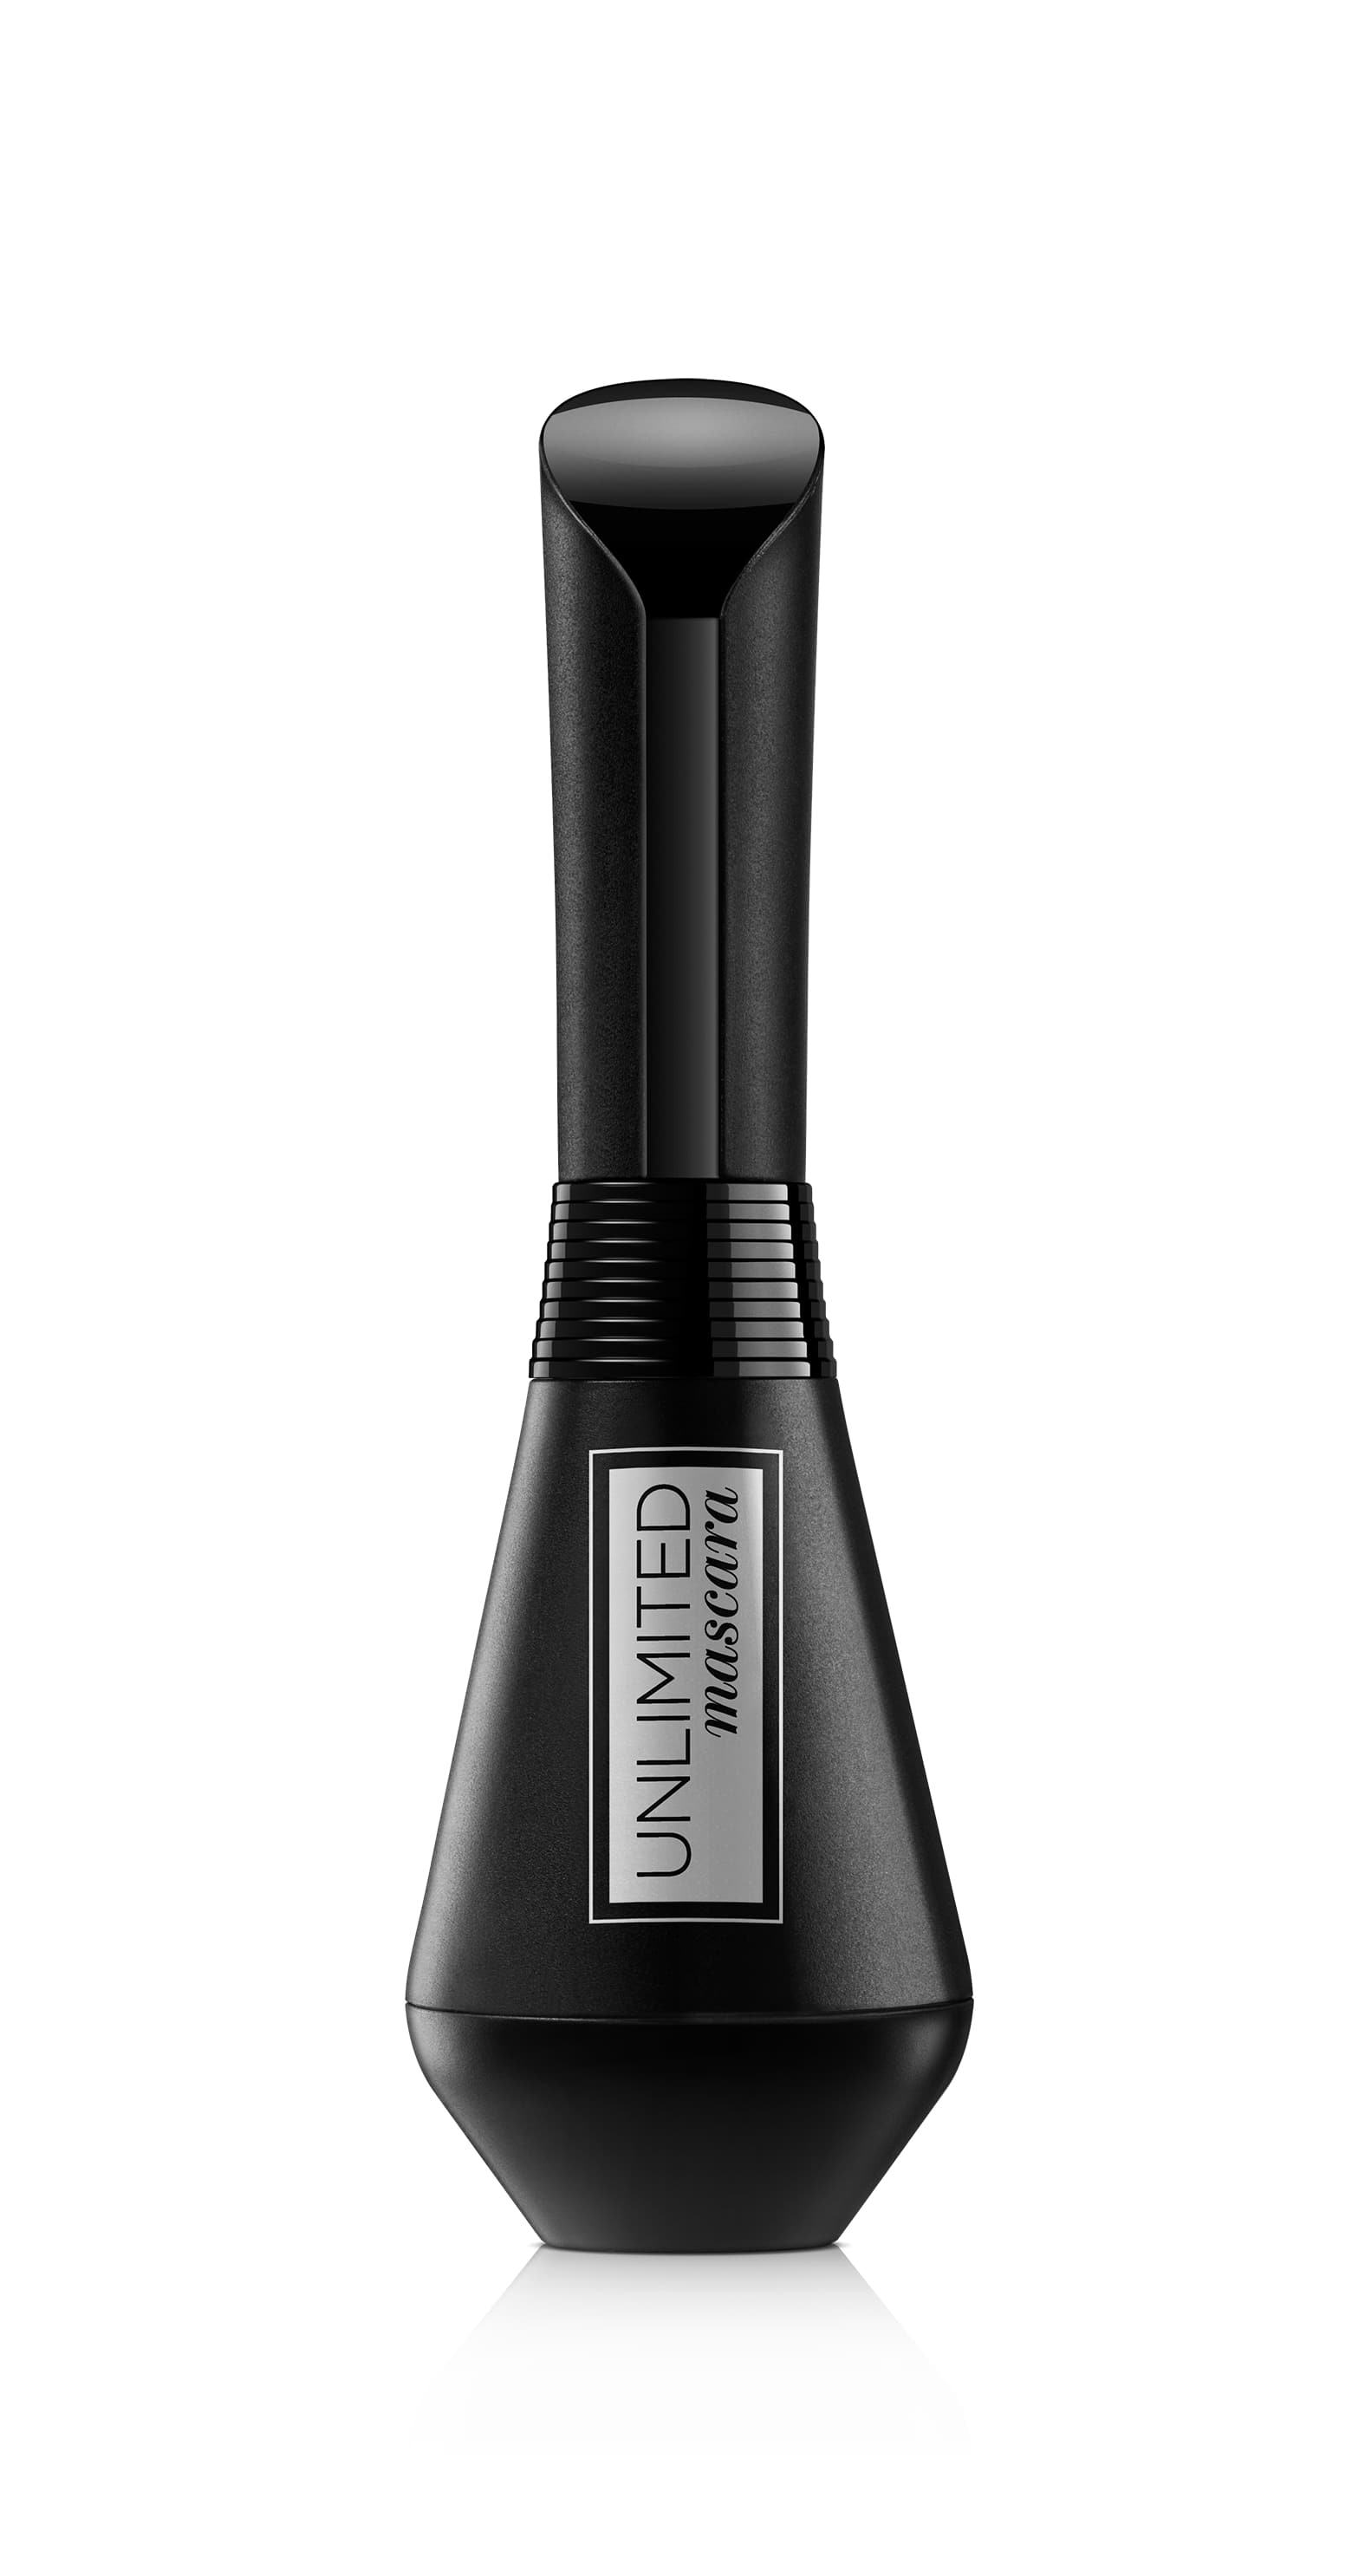 Unlimited Mascara Black